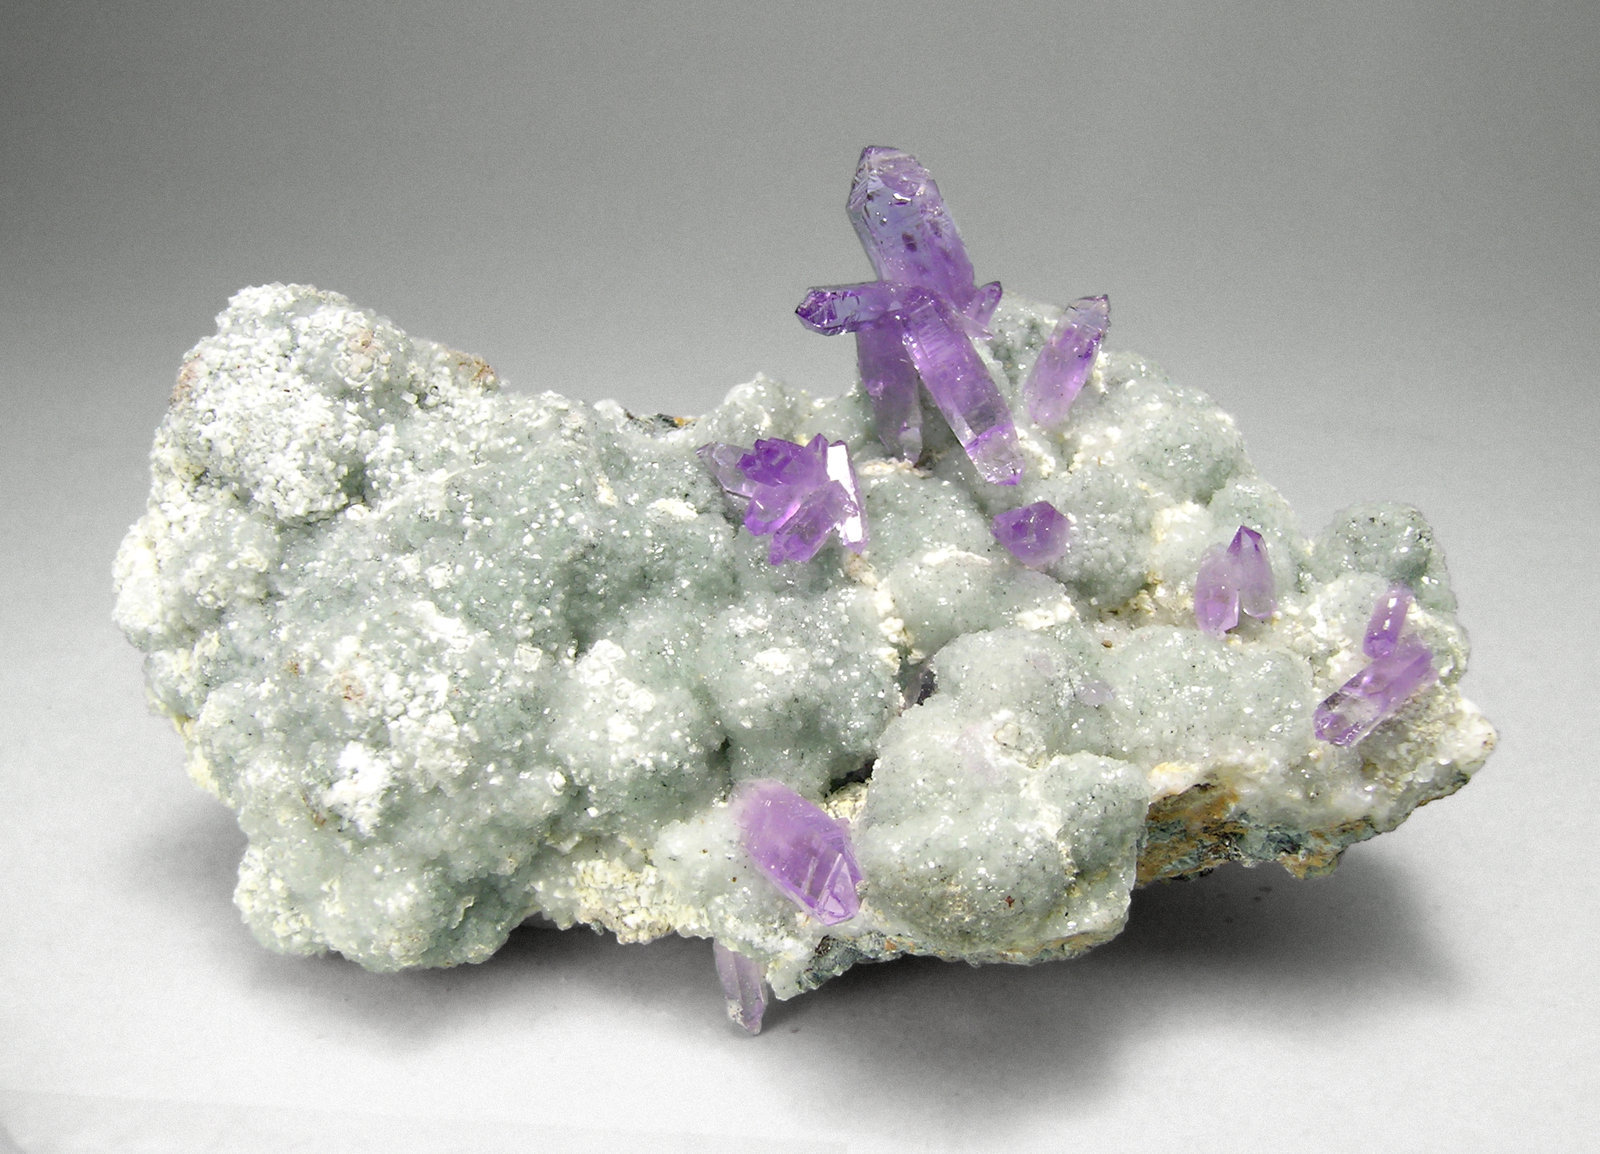 Quartz (Amethyst) with Calcite